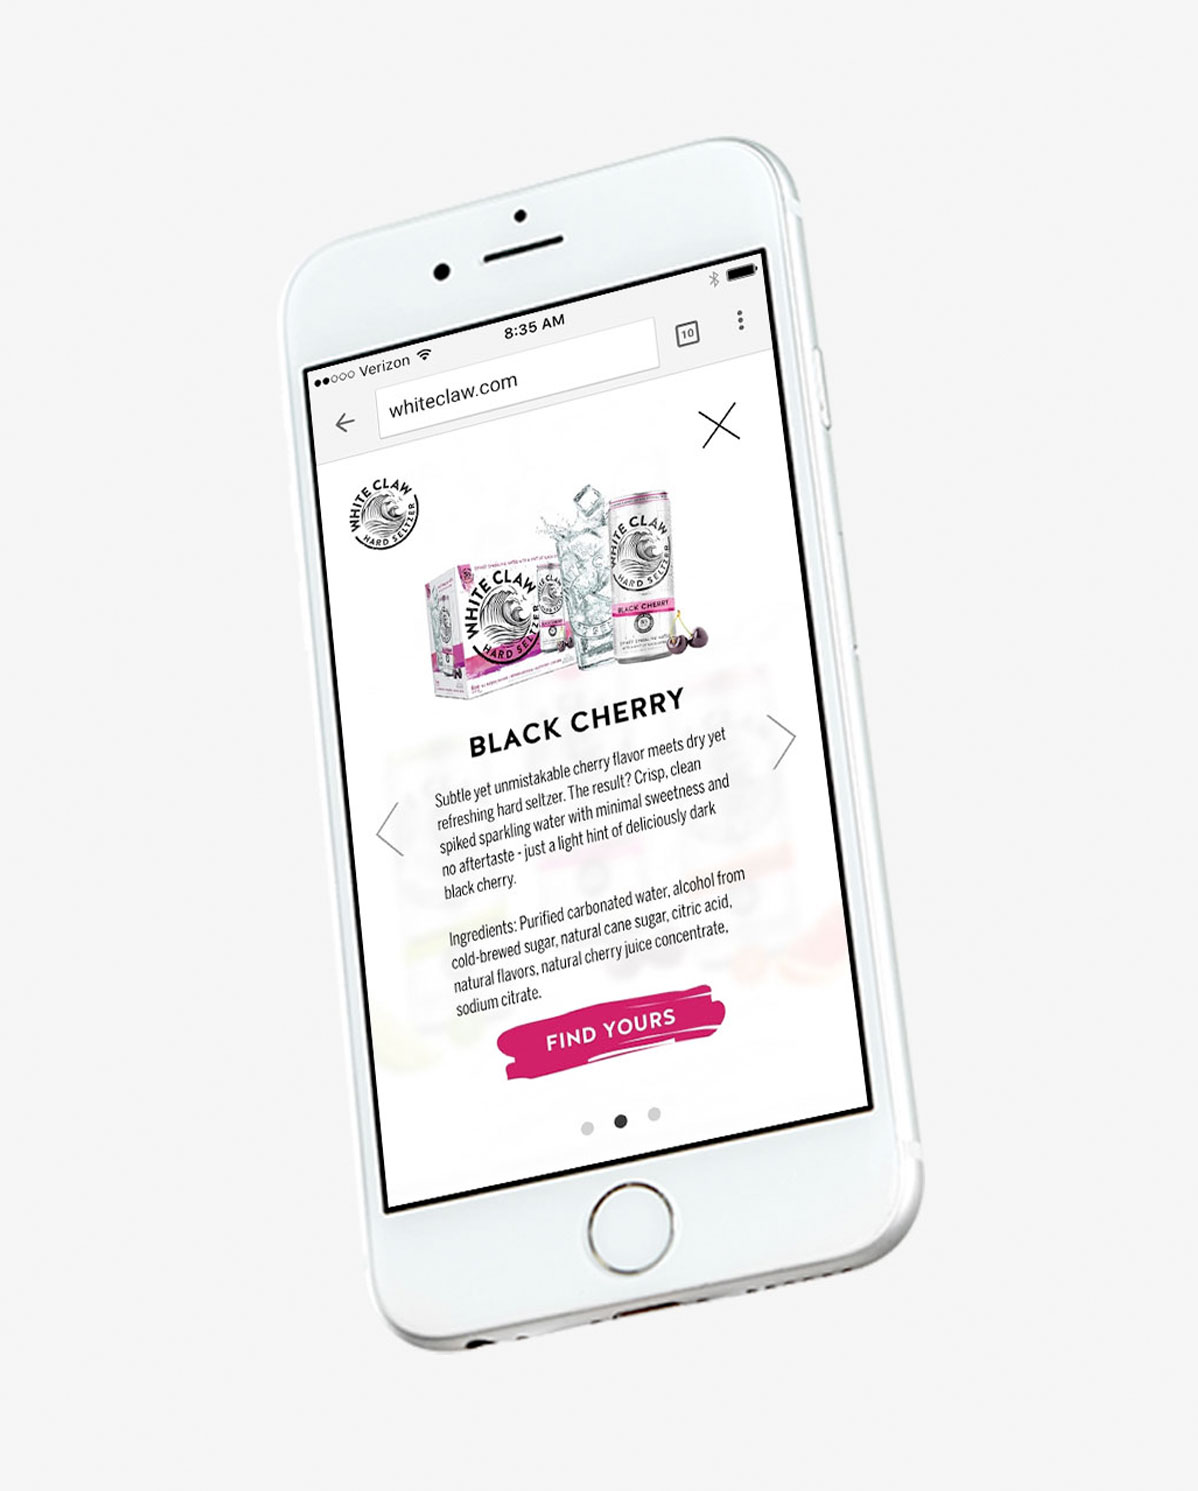 White Claw Hard Seltzer mobile first website design and development for initial brand launch by Agency Squid creative advertising agency